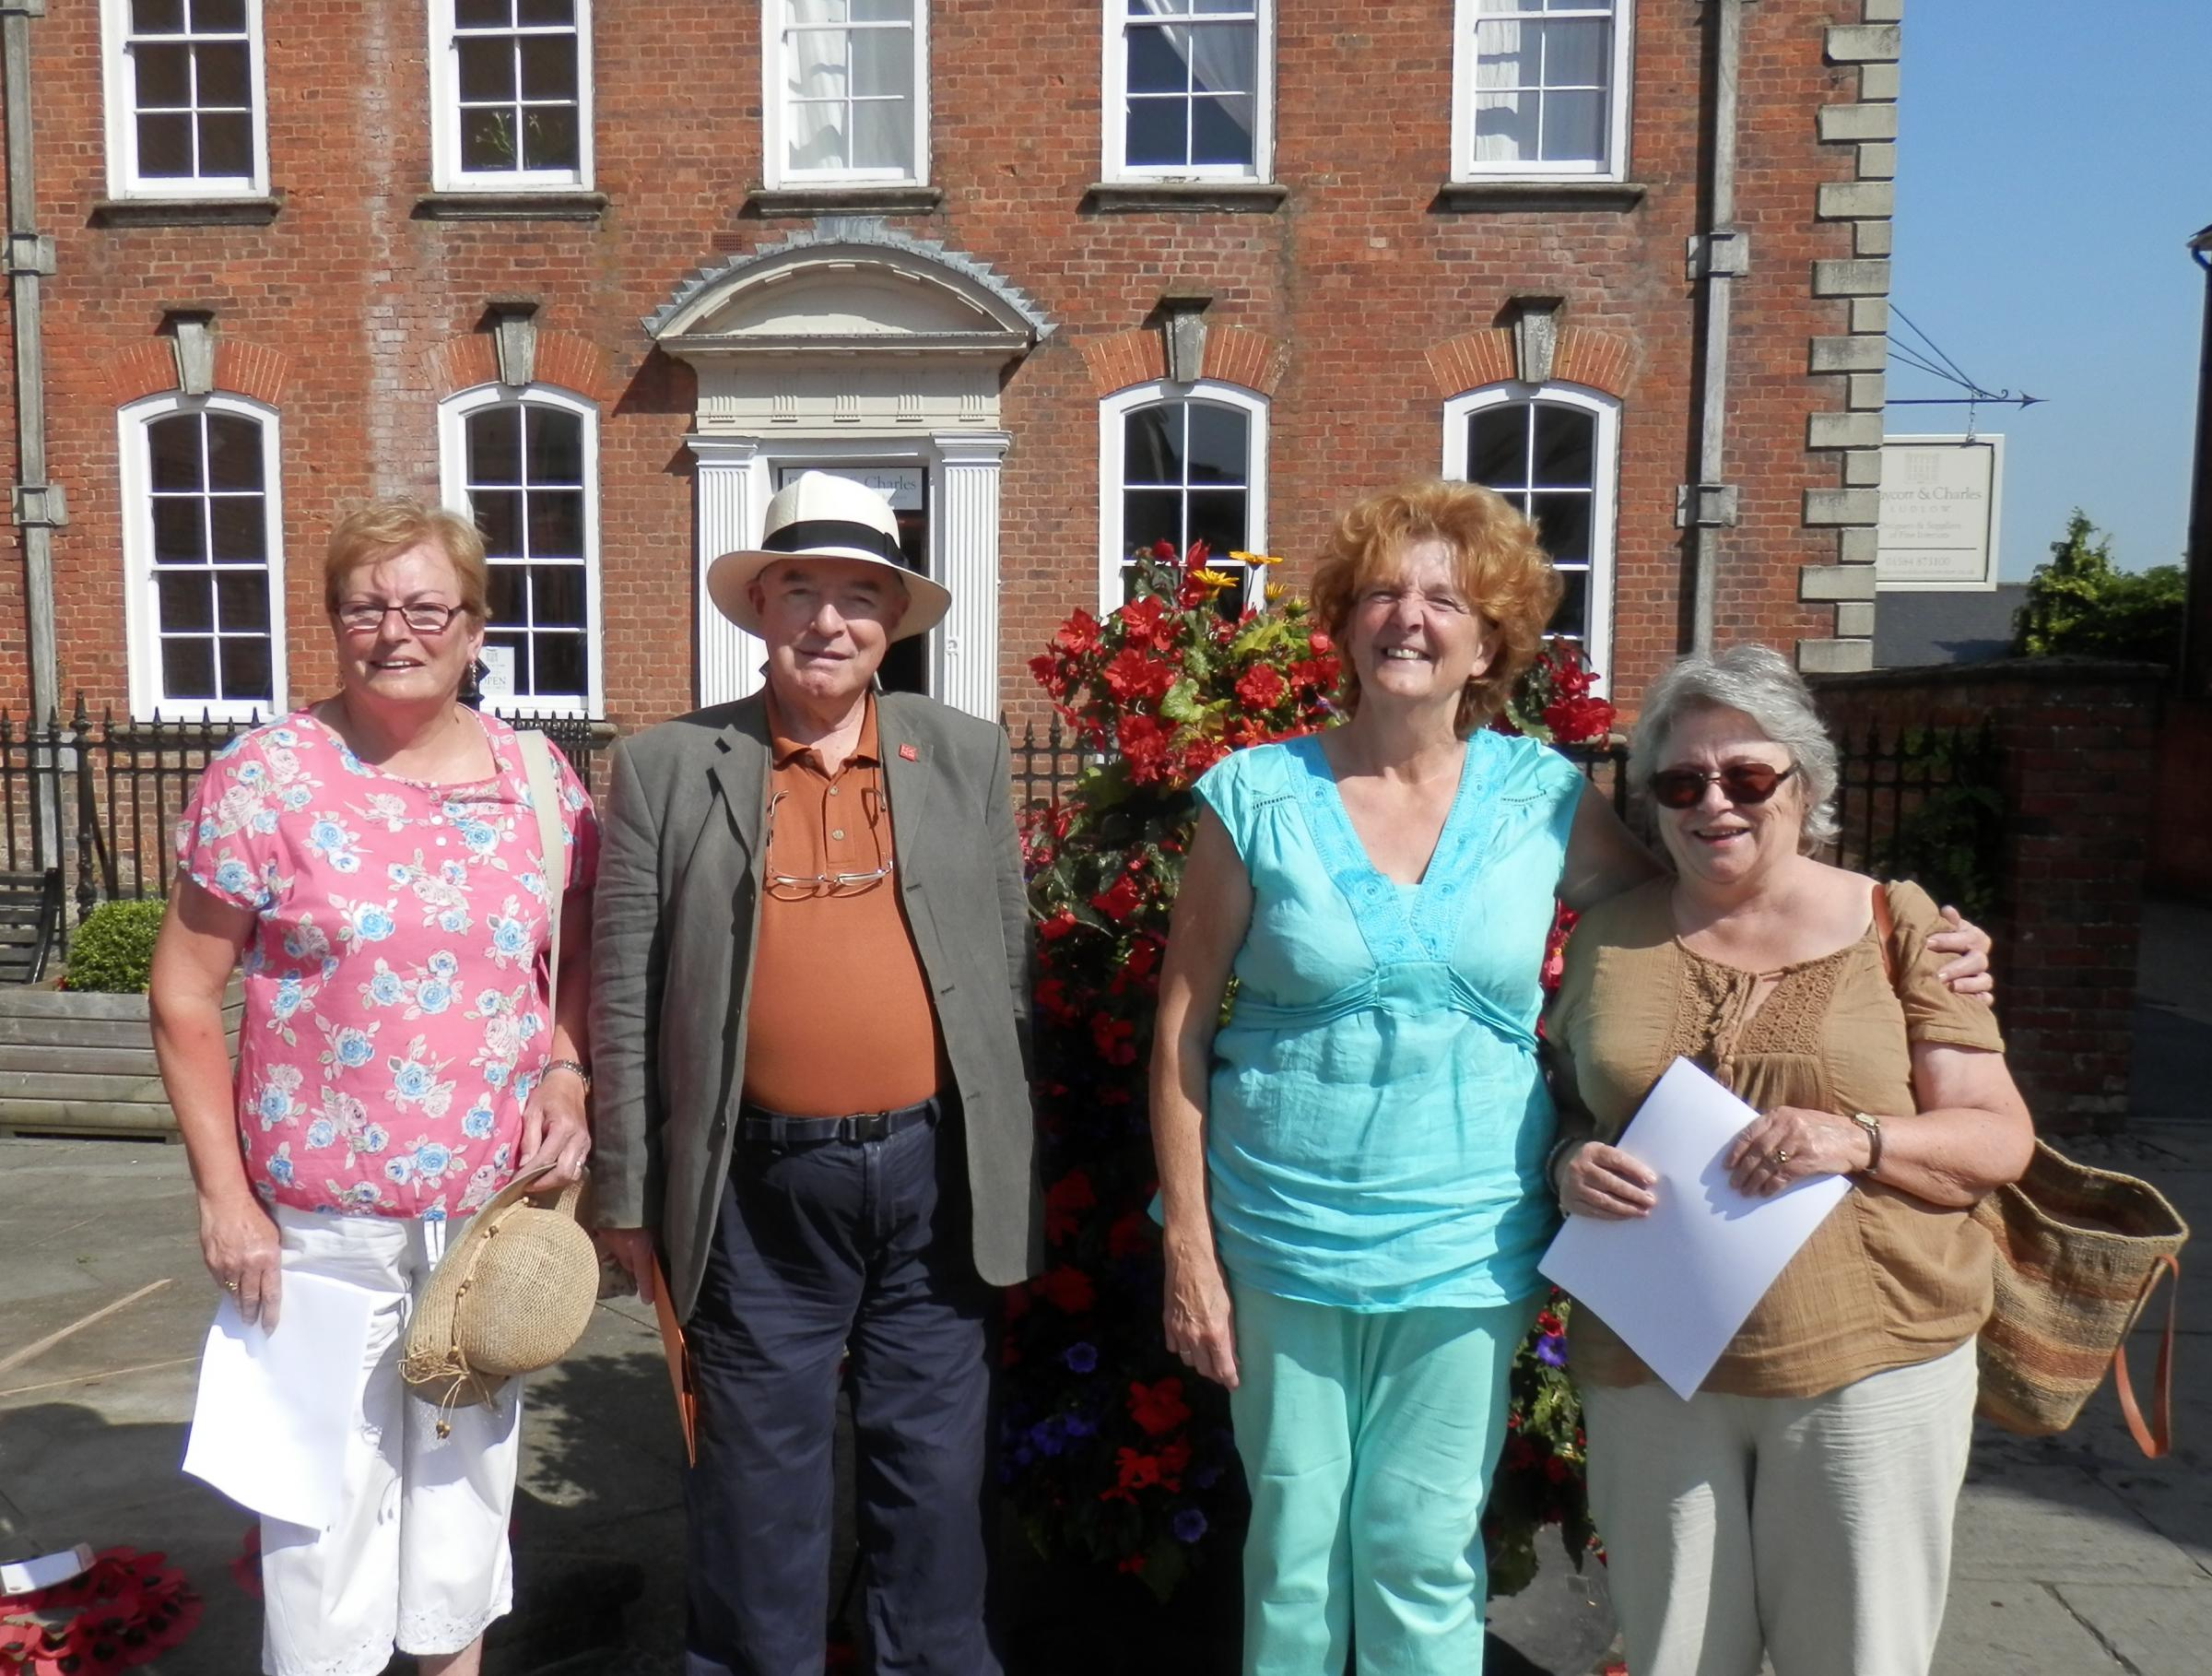 From left are: Rosemary Moseley, John Gittins, Vivienne Parry and Gill Craven.